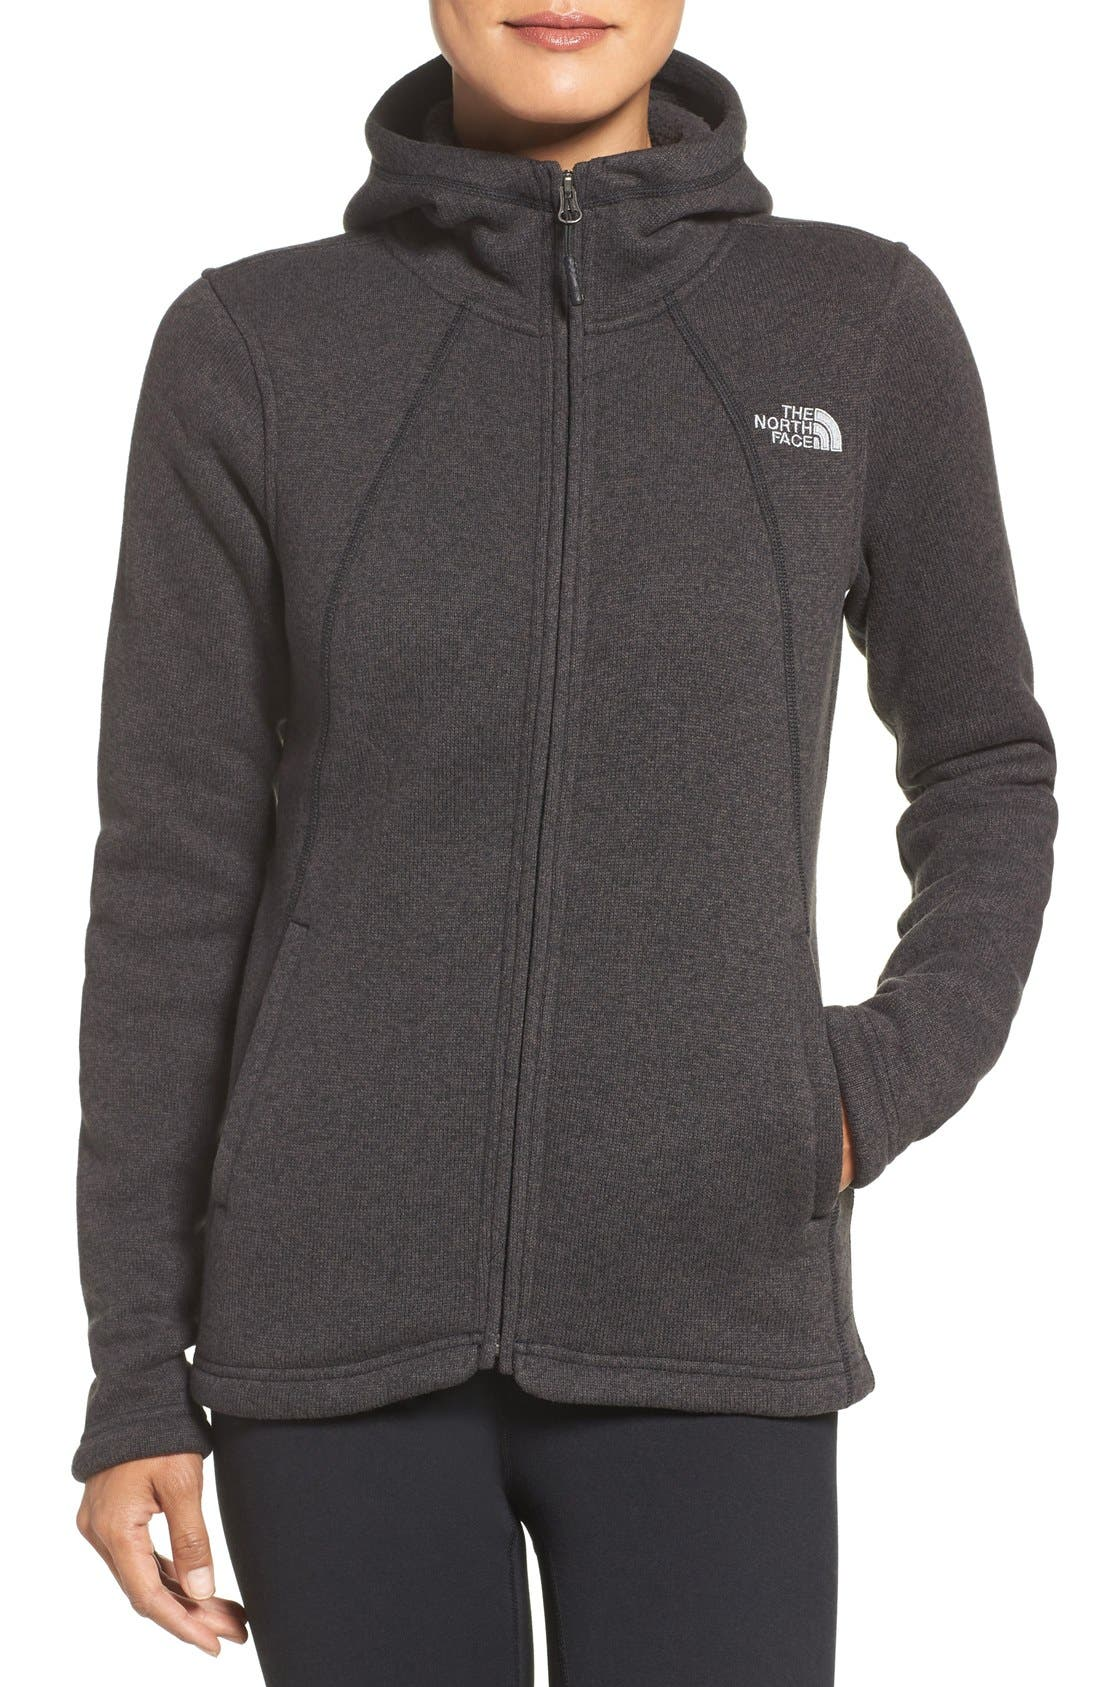 The North Face 'Crescent' Fleece Jacket